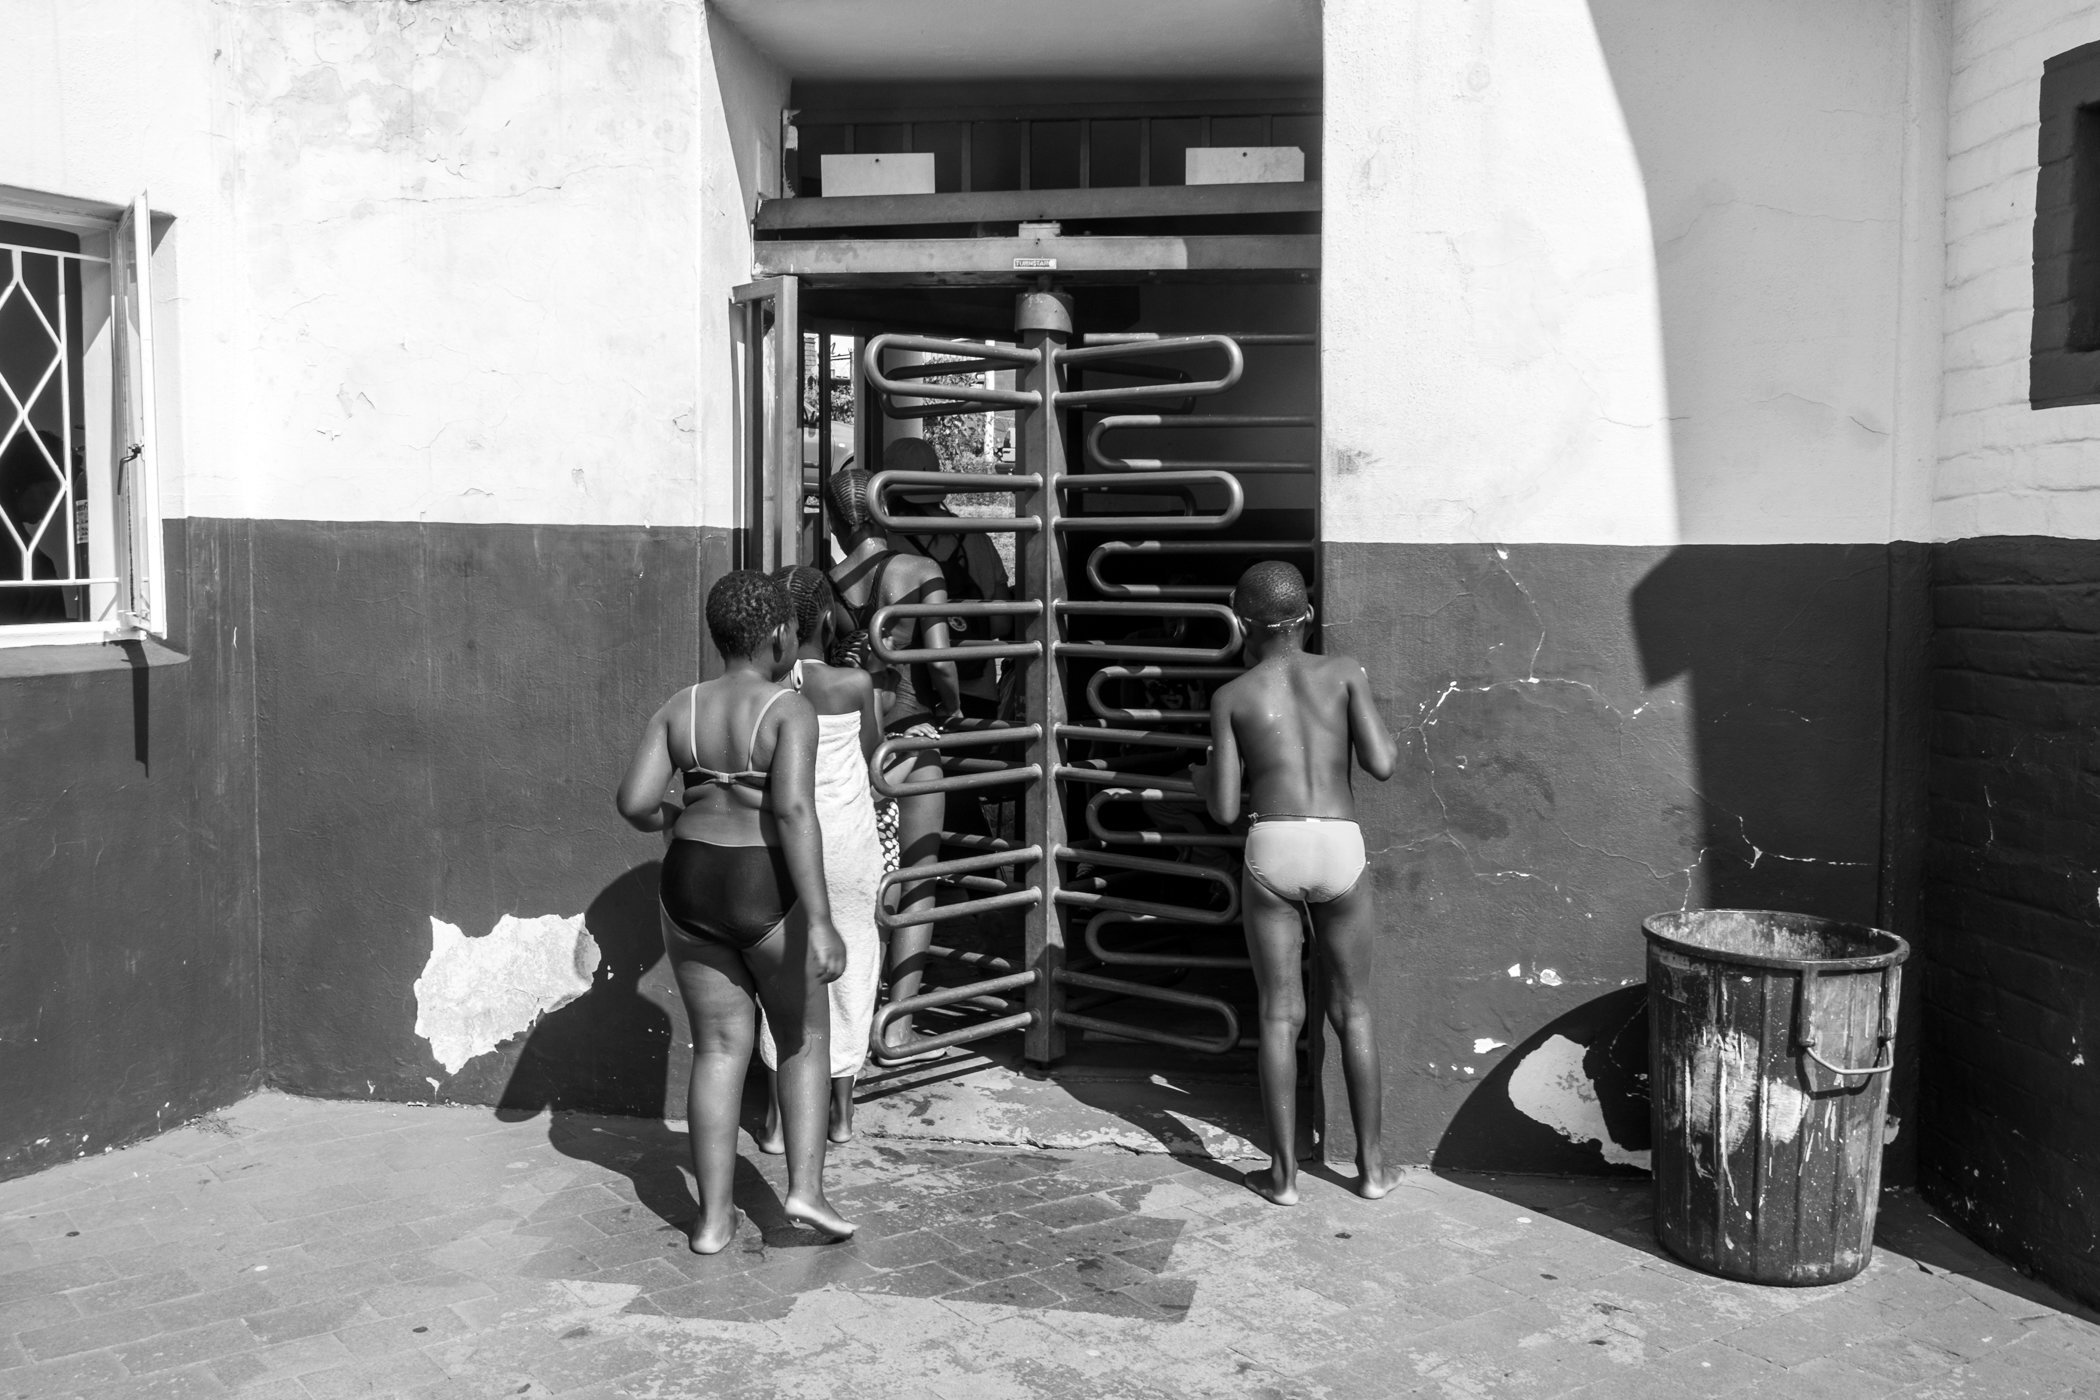 Africans_Can_Swim_Series_Series-9223.jpg